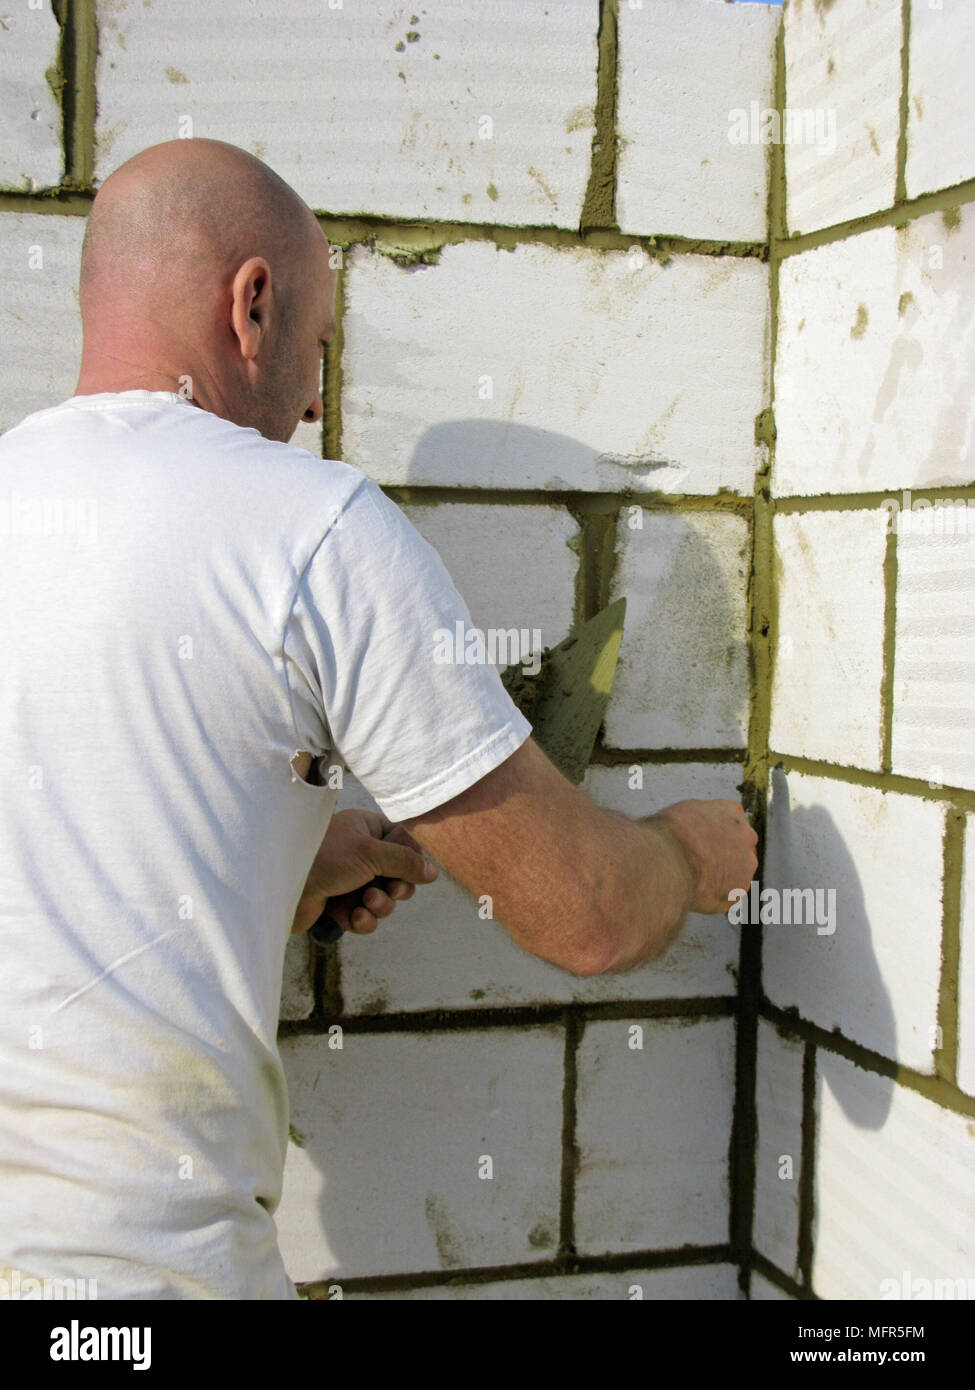 Builder / construction worker working on a brick wall